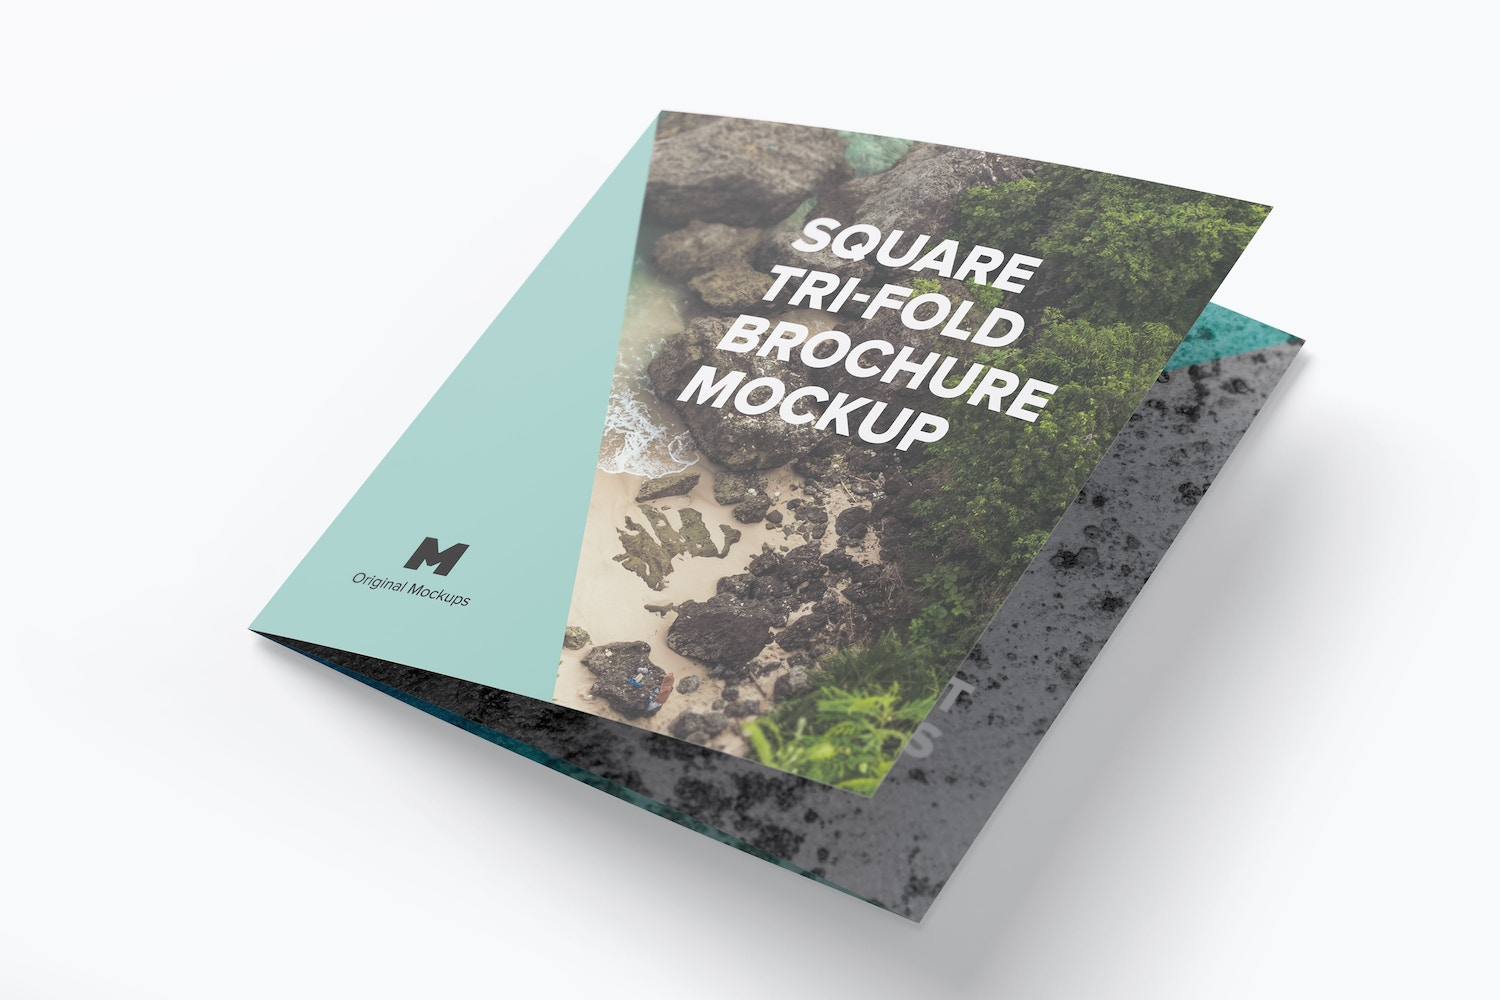 Square Tri-Fold Brochure Mockup 01 by Original Mockups on Original Mockups